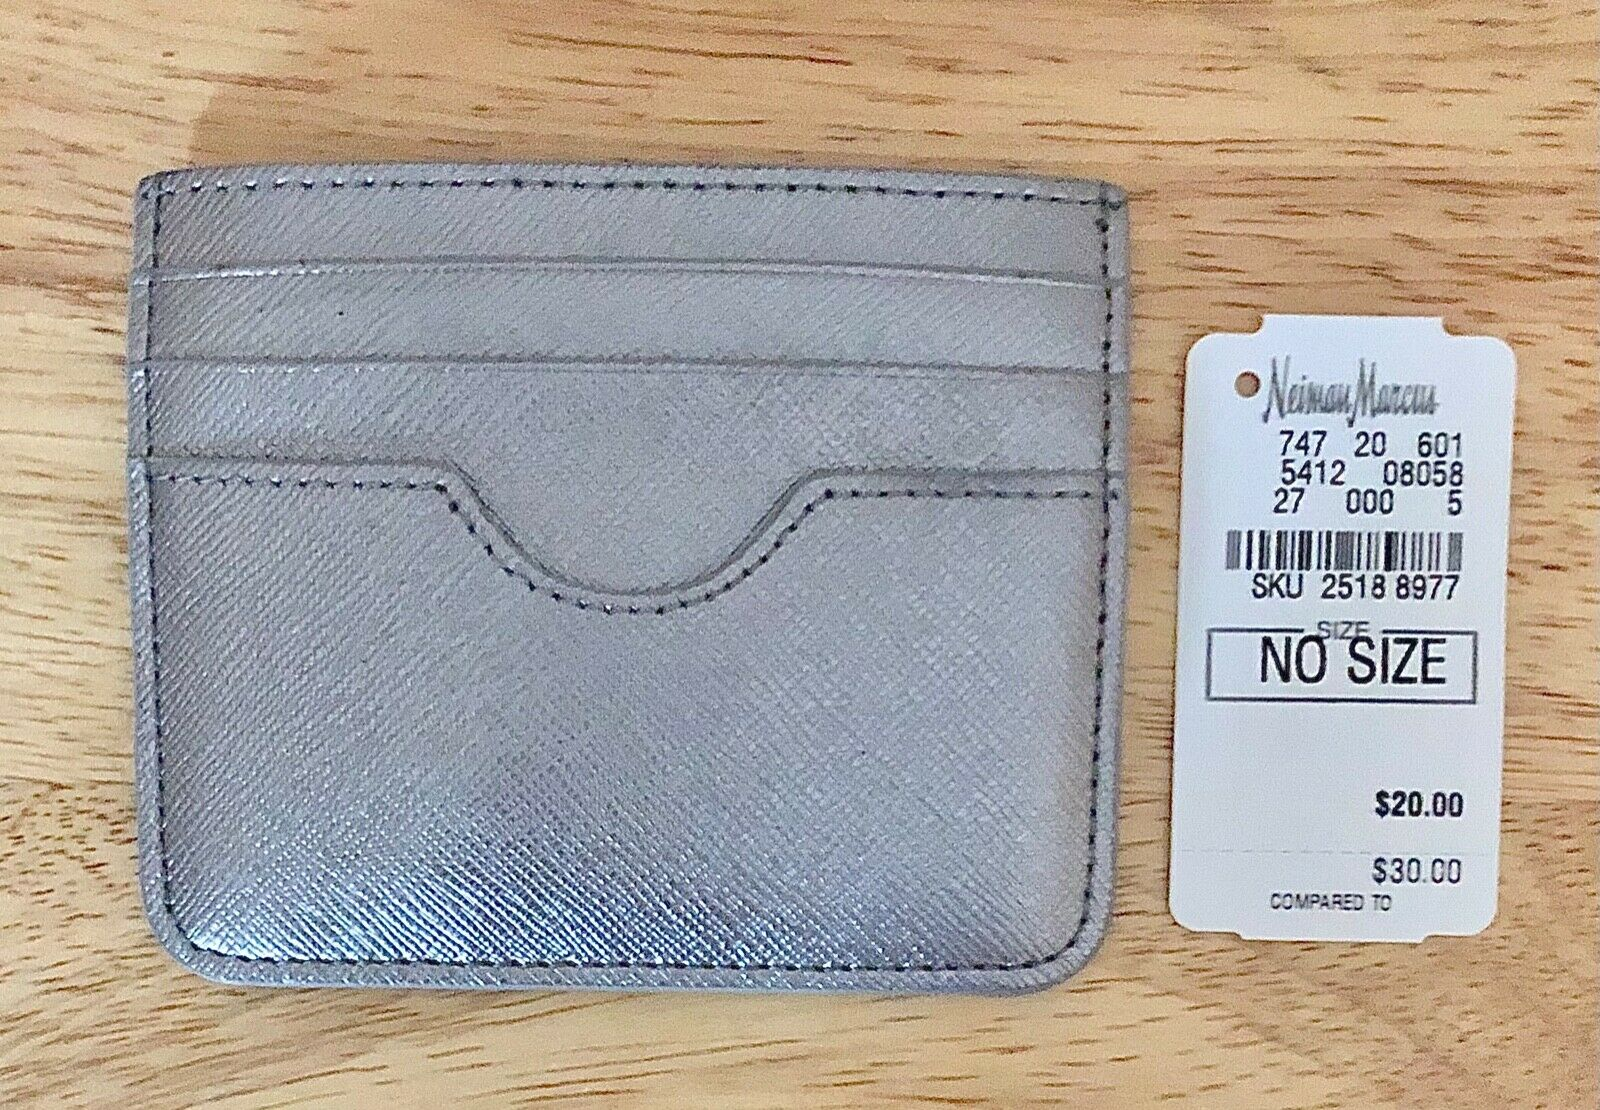 Nwt Women's Neiman Marcus Silver Leather Card Case Keeper/Holder